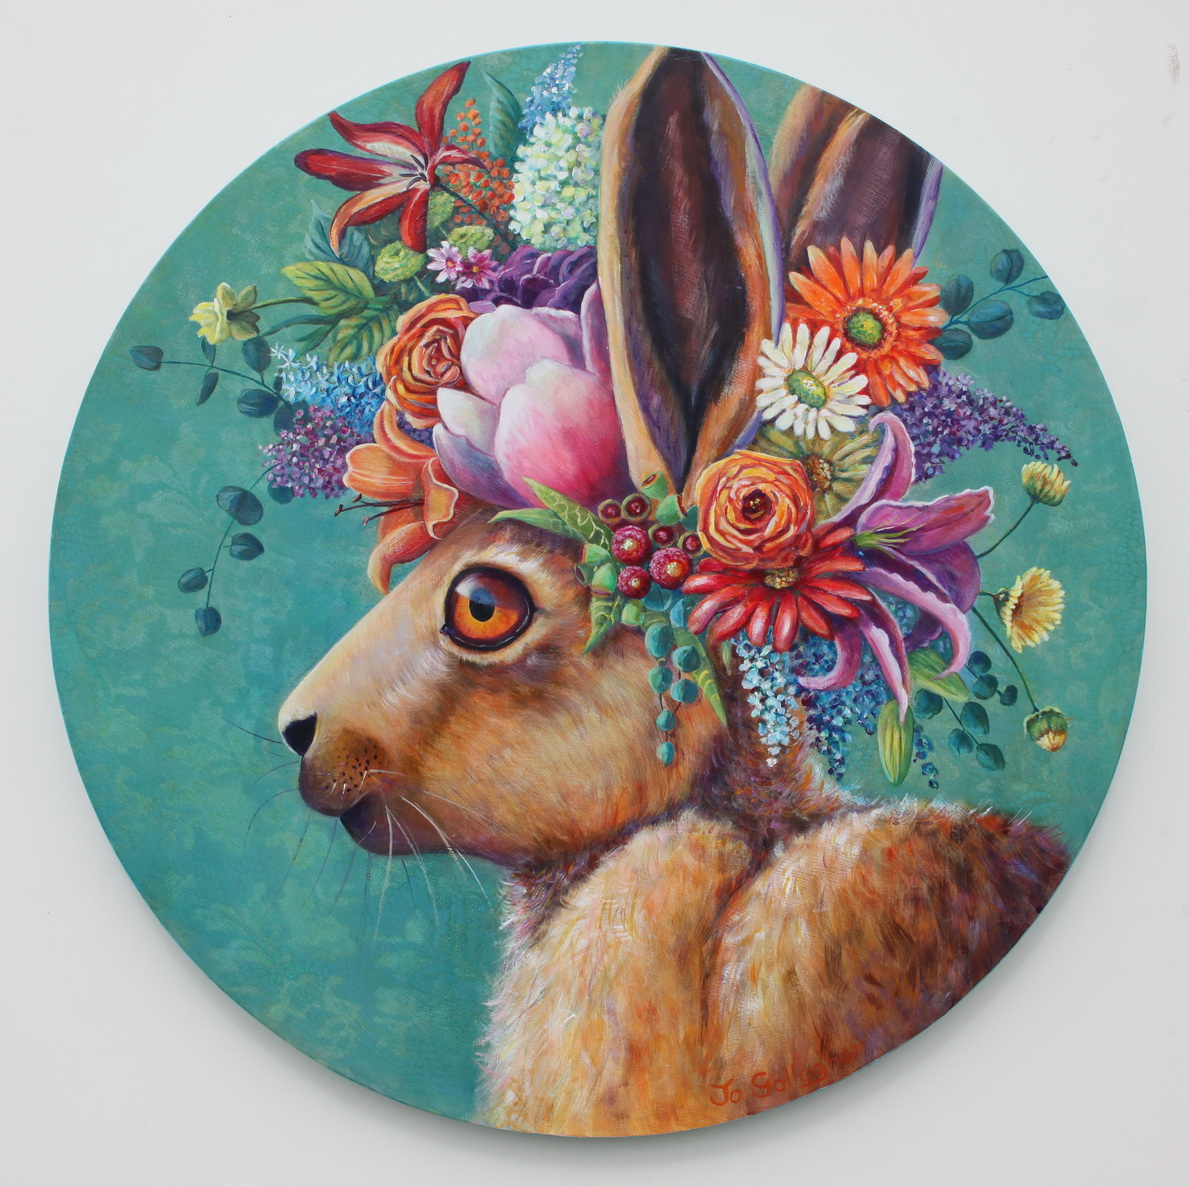 Flowers in her Hare 